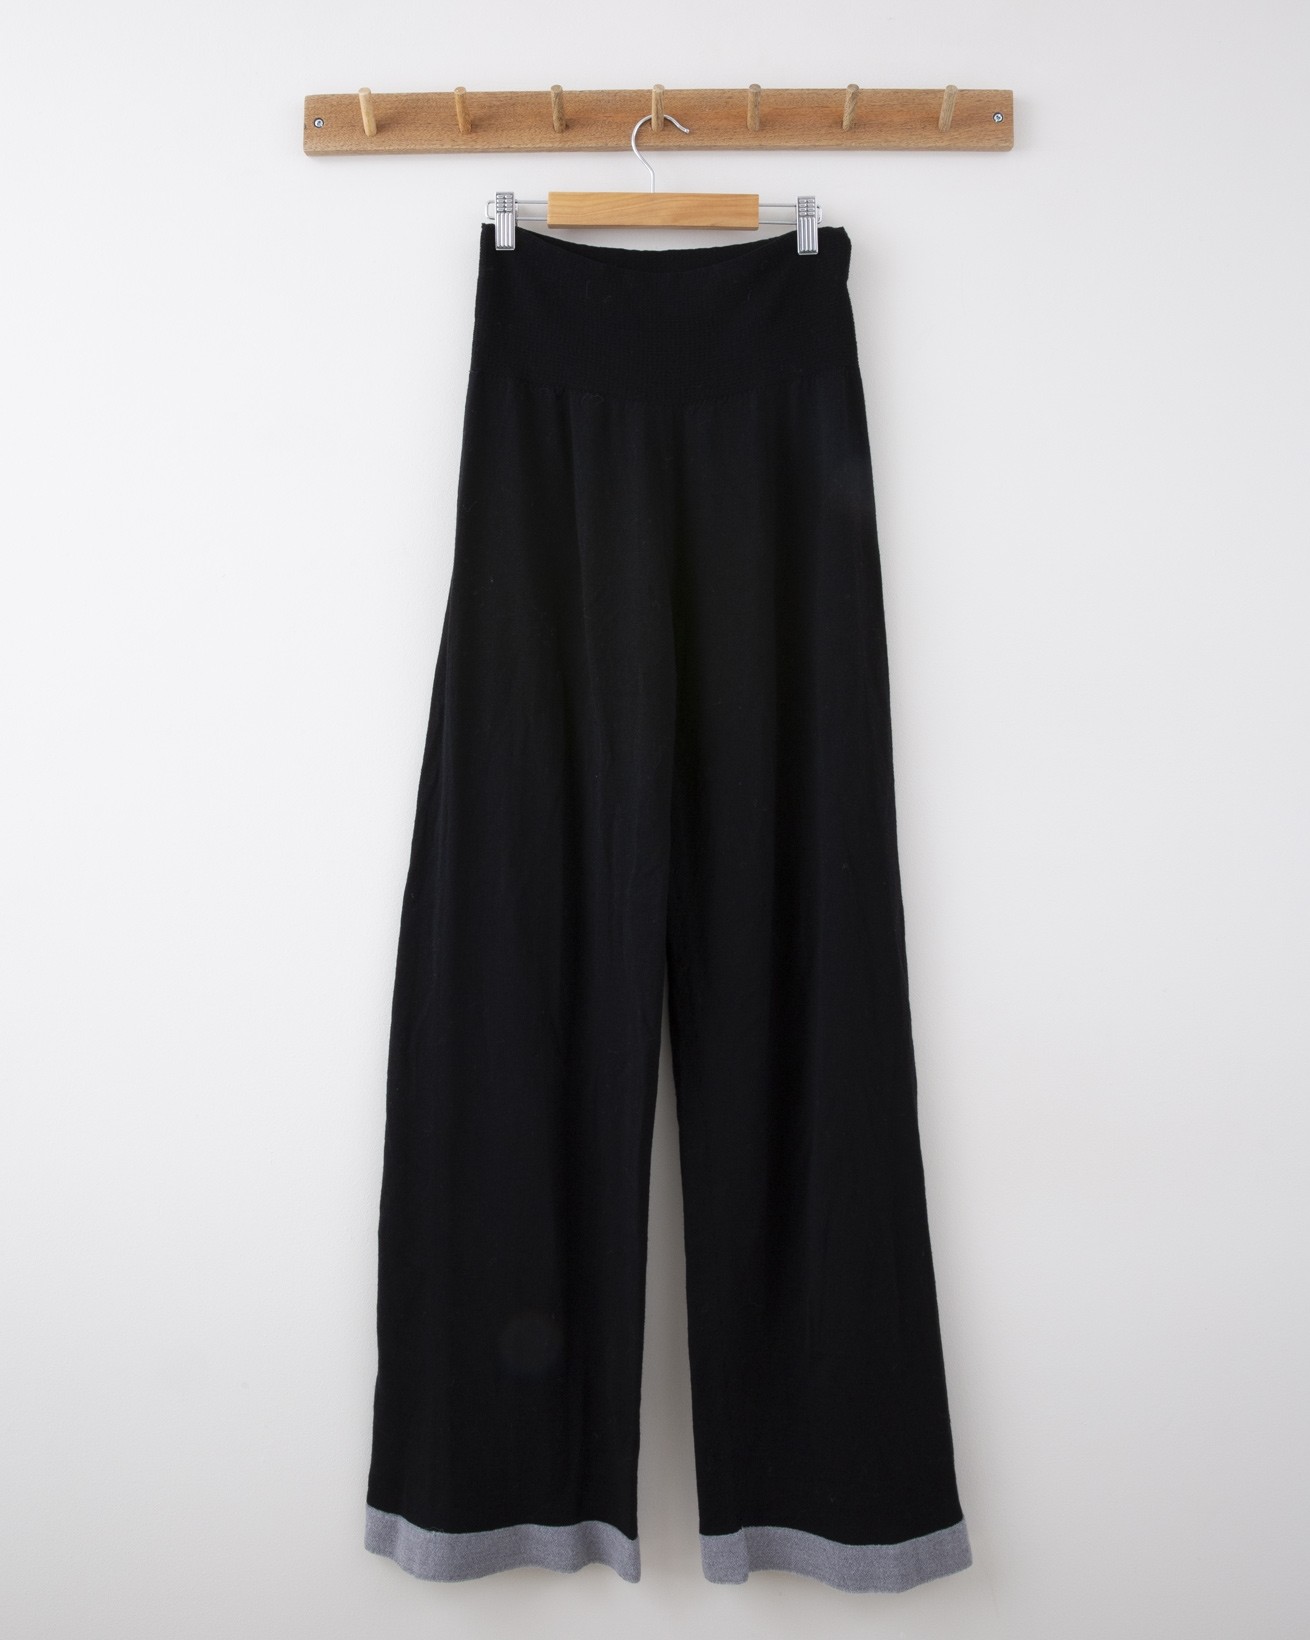 Wide Leg Merino Lounge Pant - Small - Black with Silver Grey Tipping - 1278